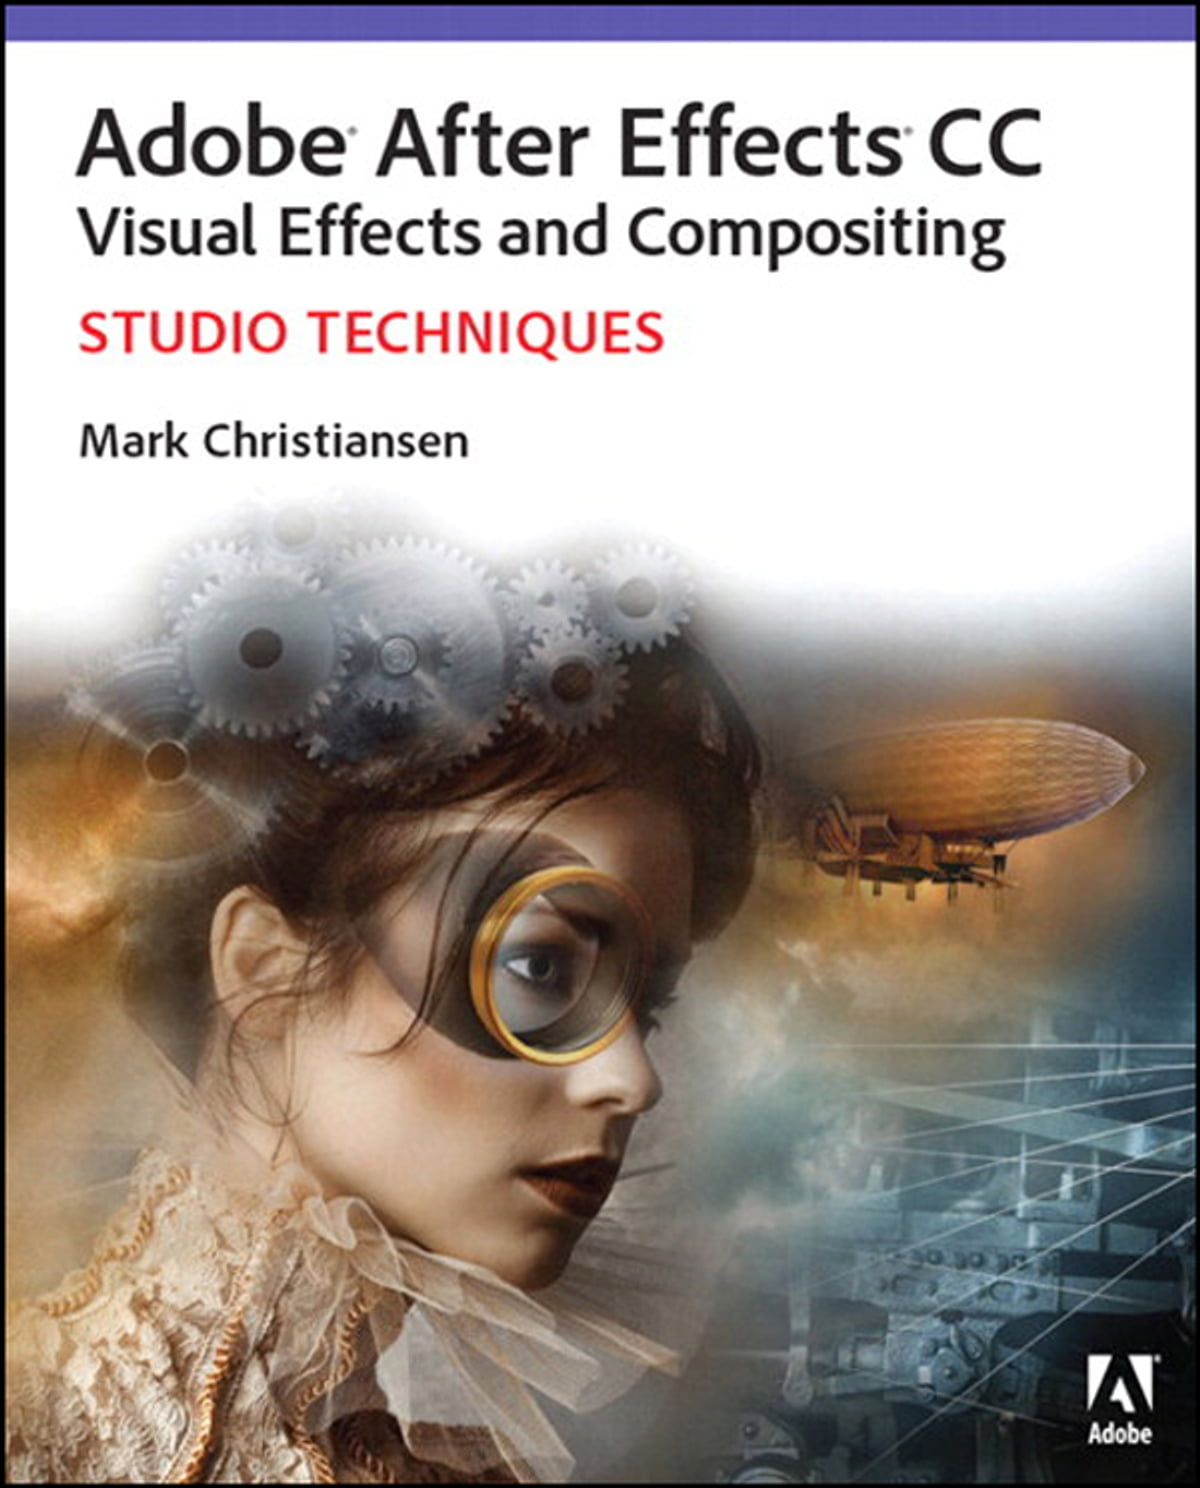 Adobe After Effects CC Visual Effects and Compositing Studio Techniques  eBook by Mark Christiansen - Rakuten Kobo